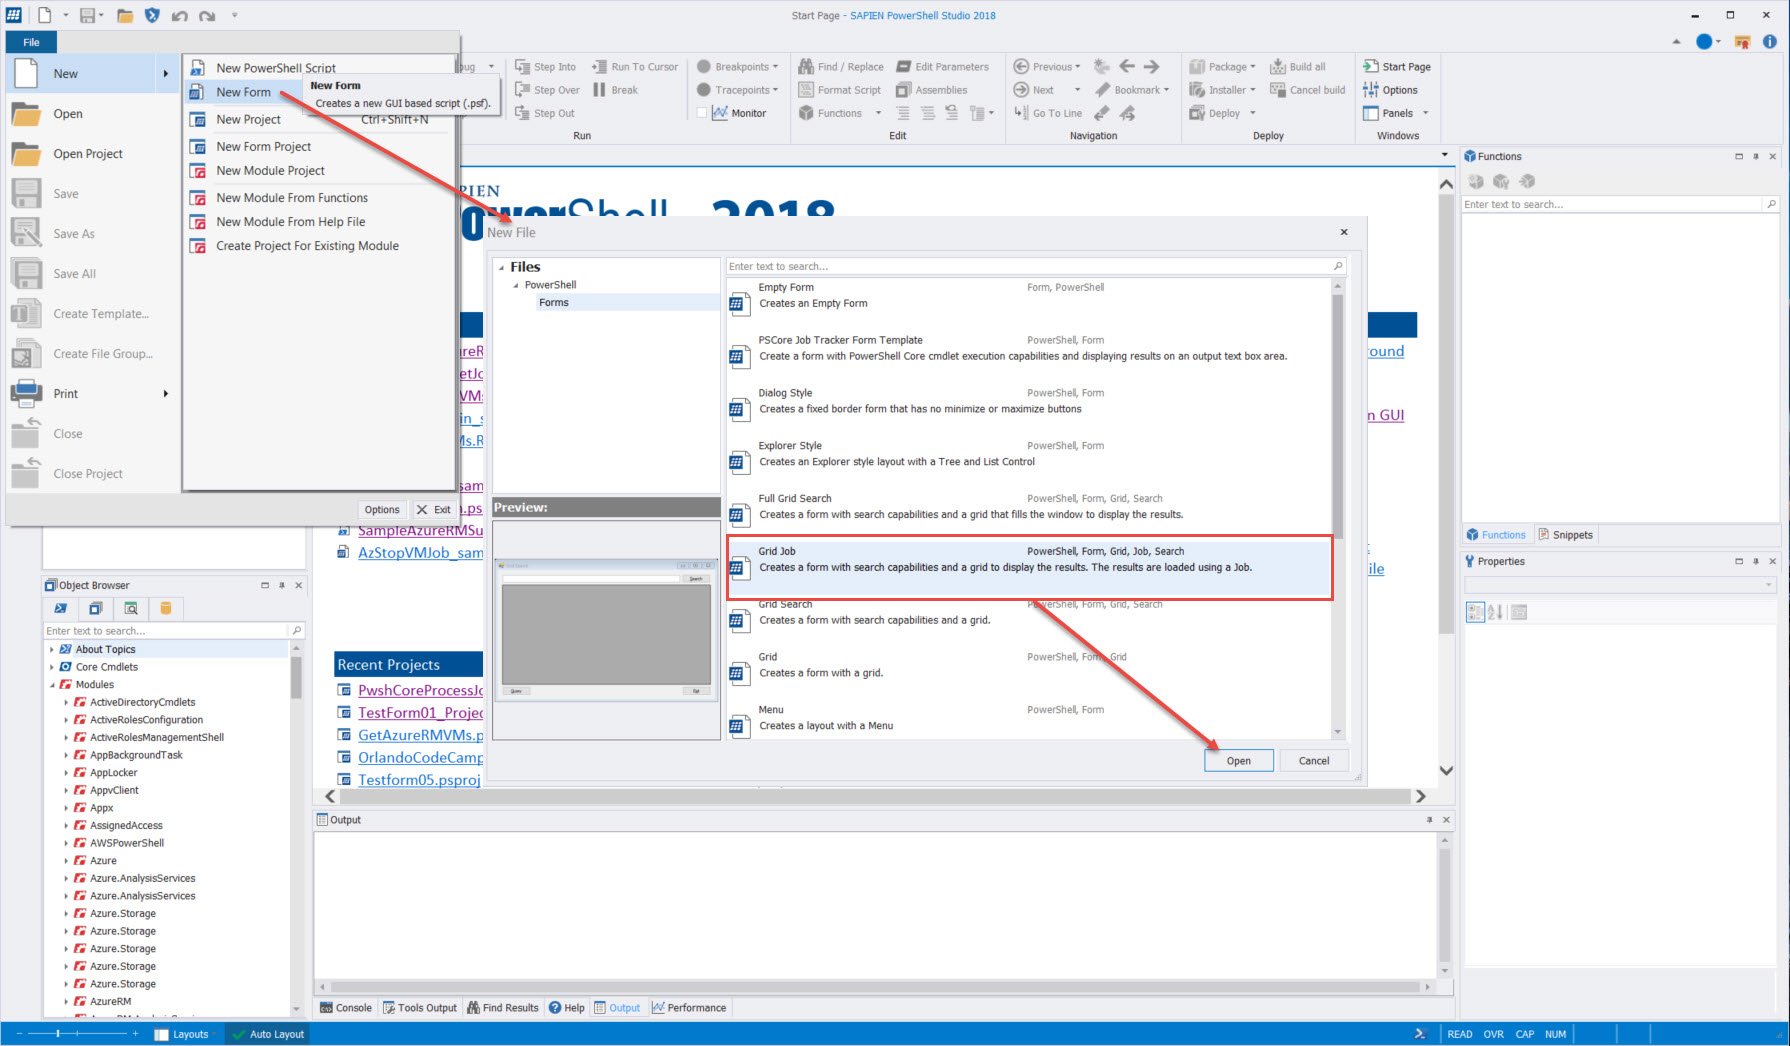 Powershell Studio Azure Background Jobs In Gui Application With